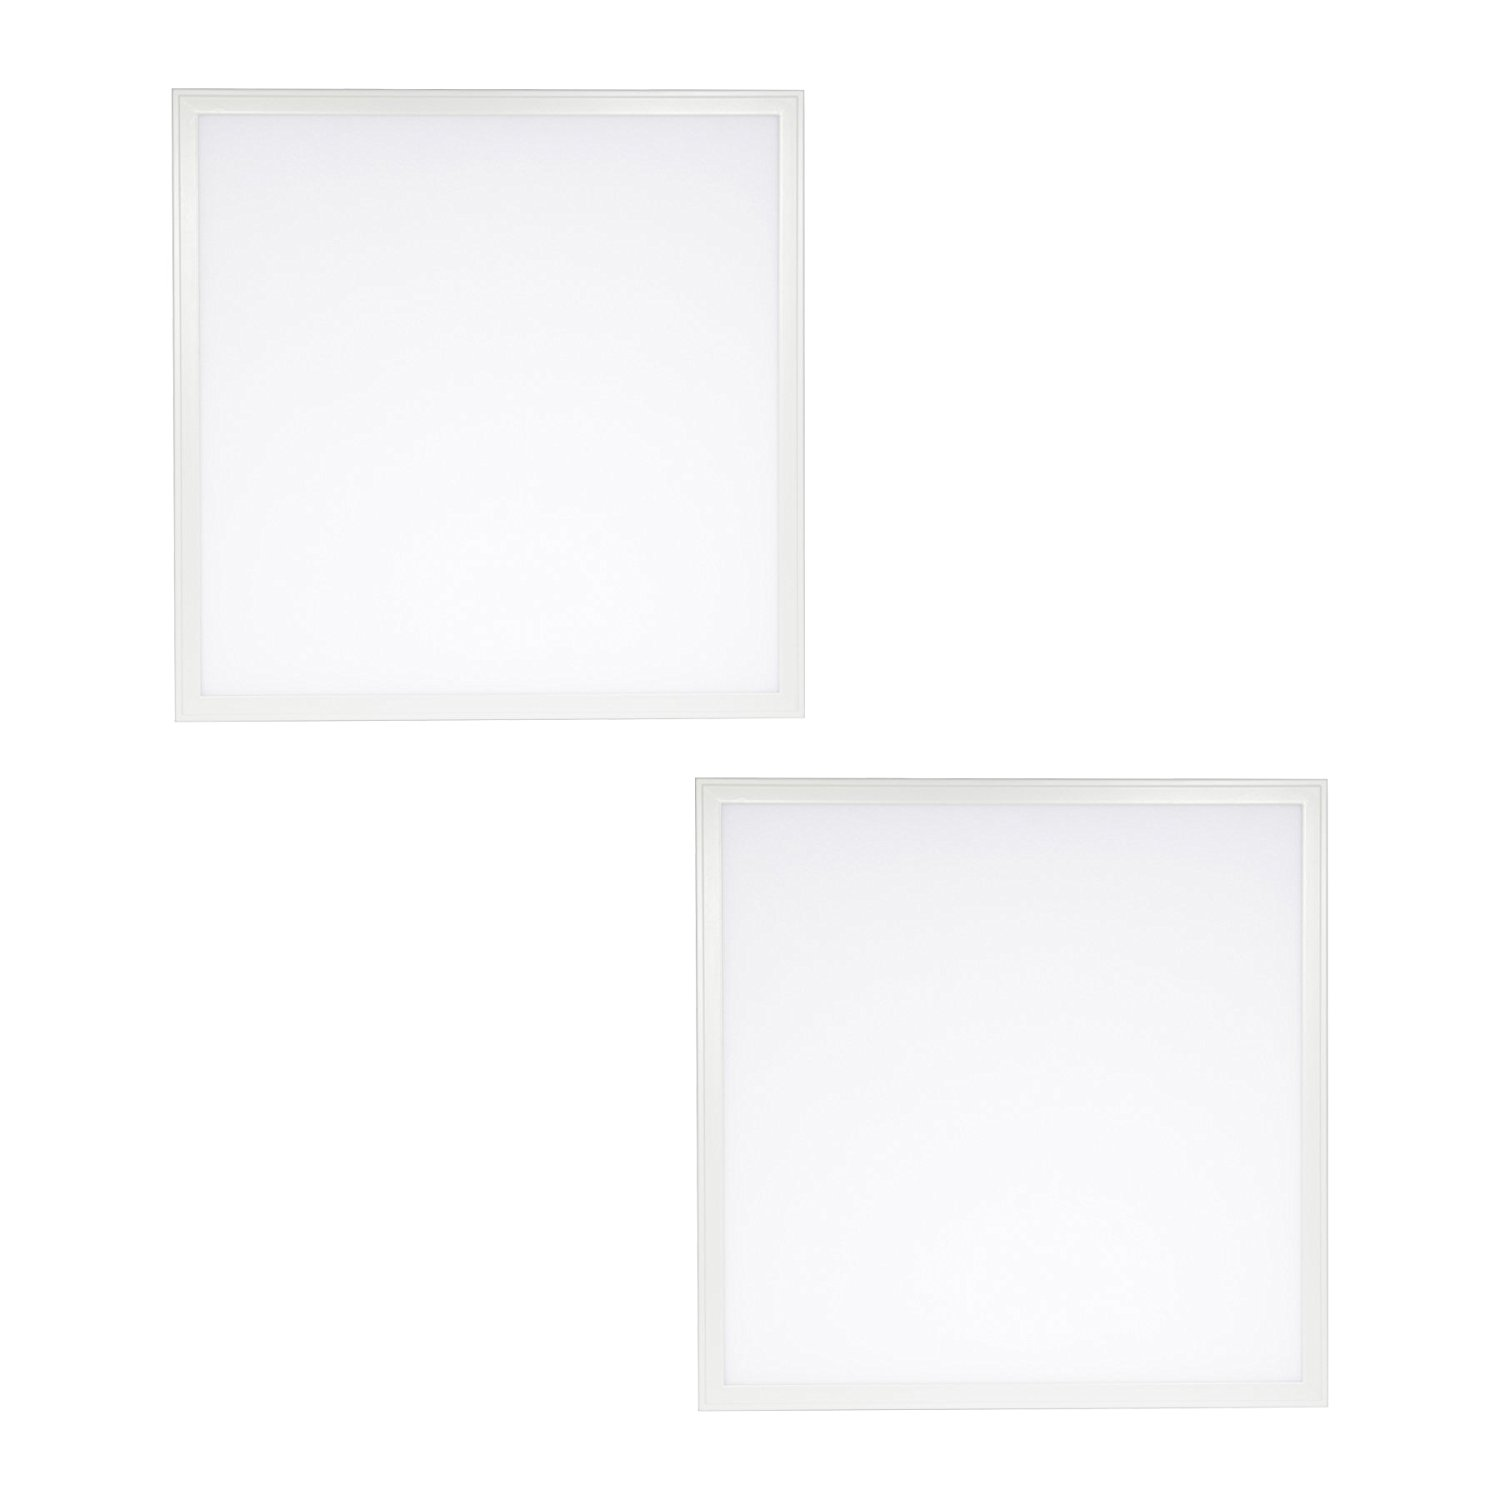 2-Pack - 2ft x 2ft LED Dimmable Flat Panel - 40W, 4000 Lumens - 4000K Bright White - DLC 4.0 Standard